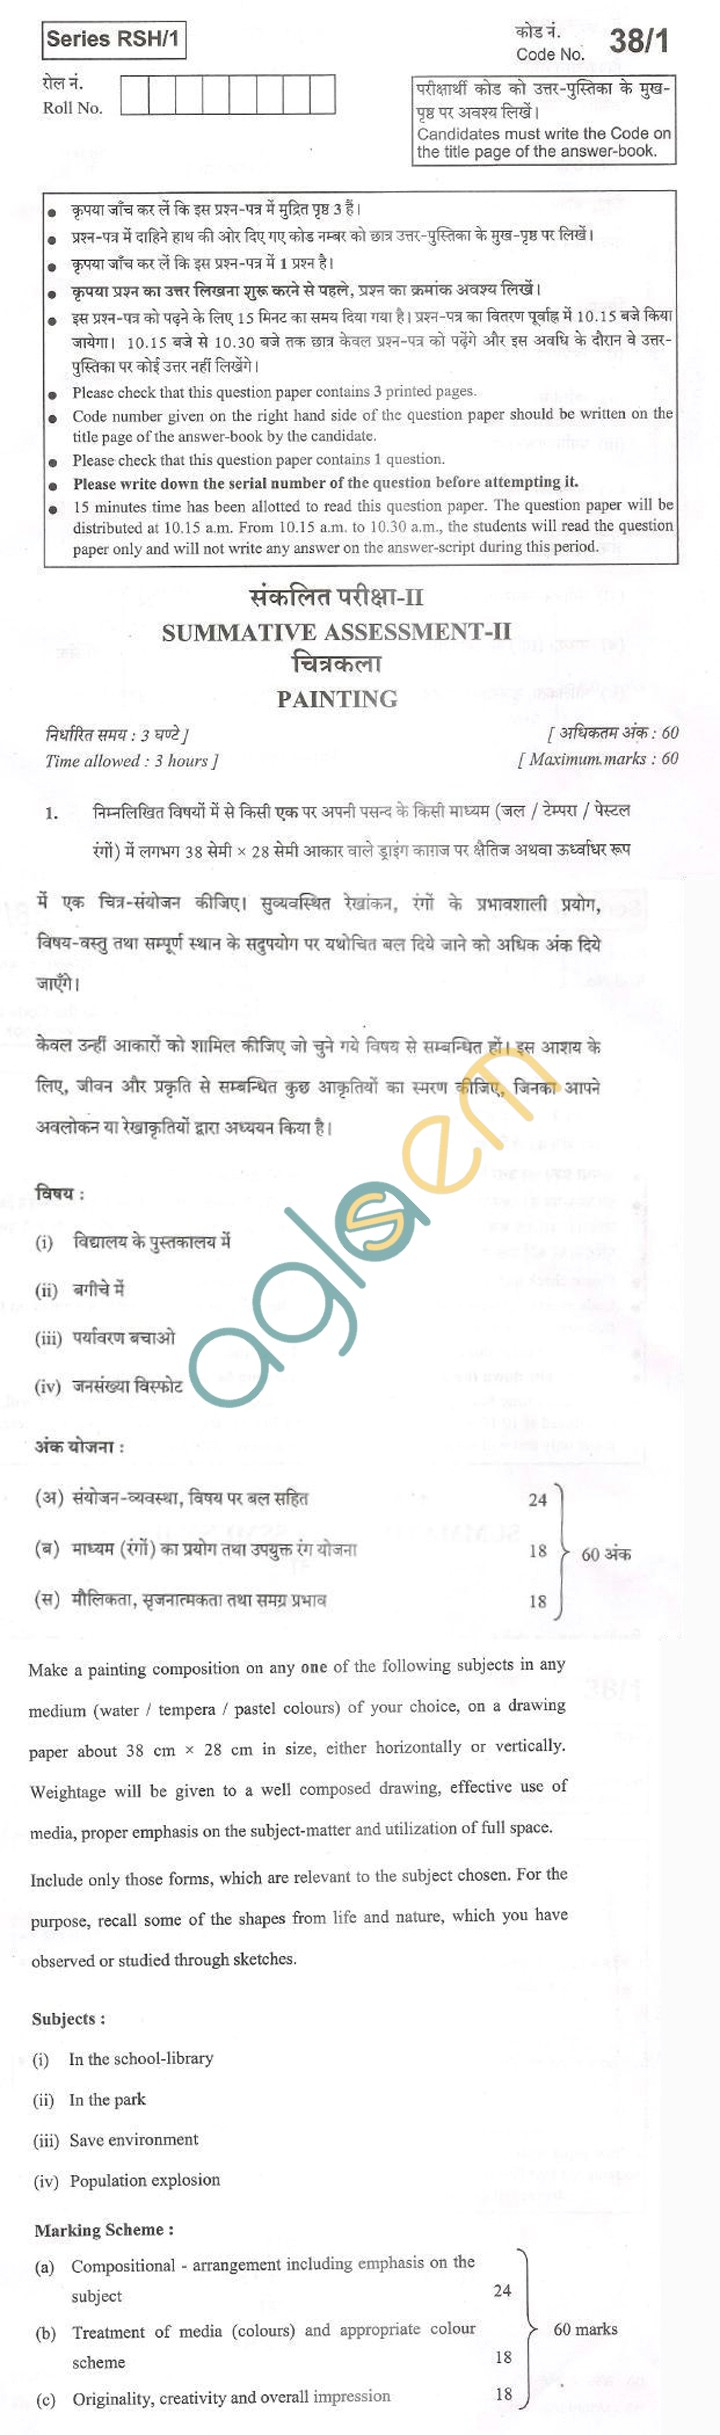 CBSE Board Exam 2013 Class X Question Paper - Painting